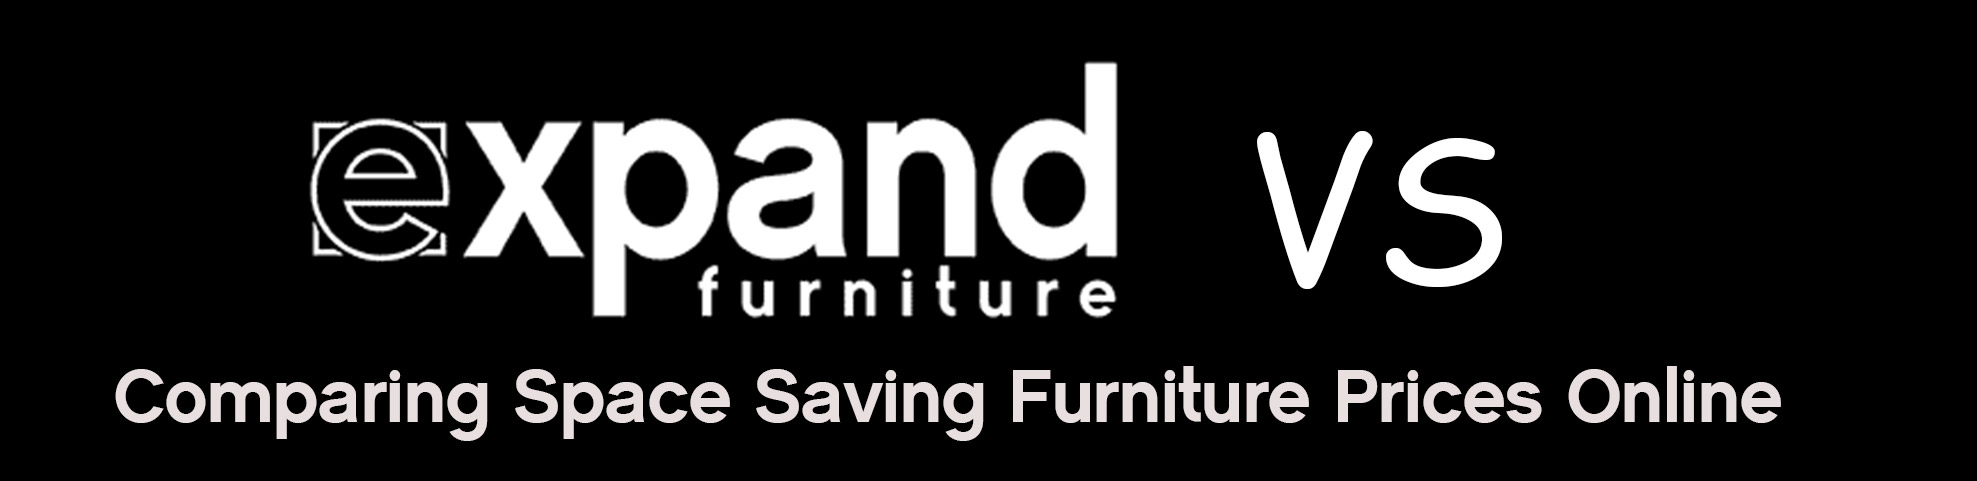 Expand-Furniture-vs-competing-space-saving-resource-furniture